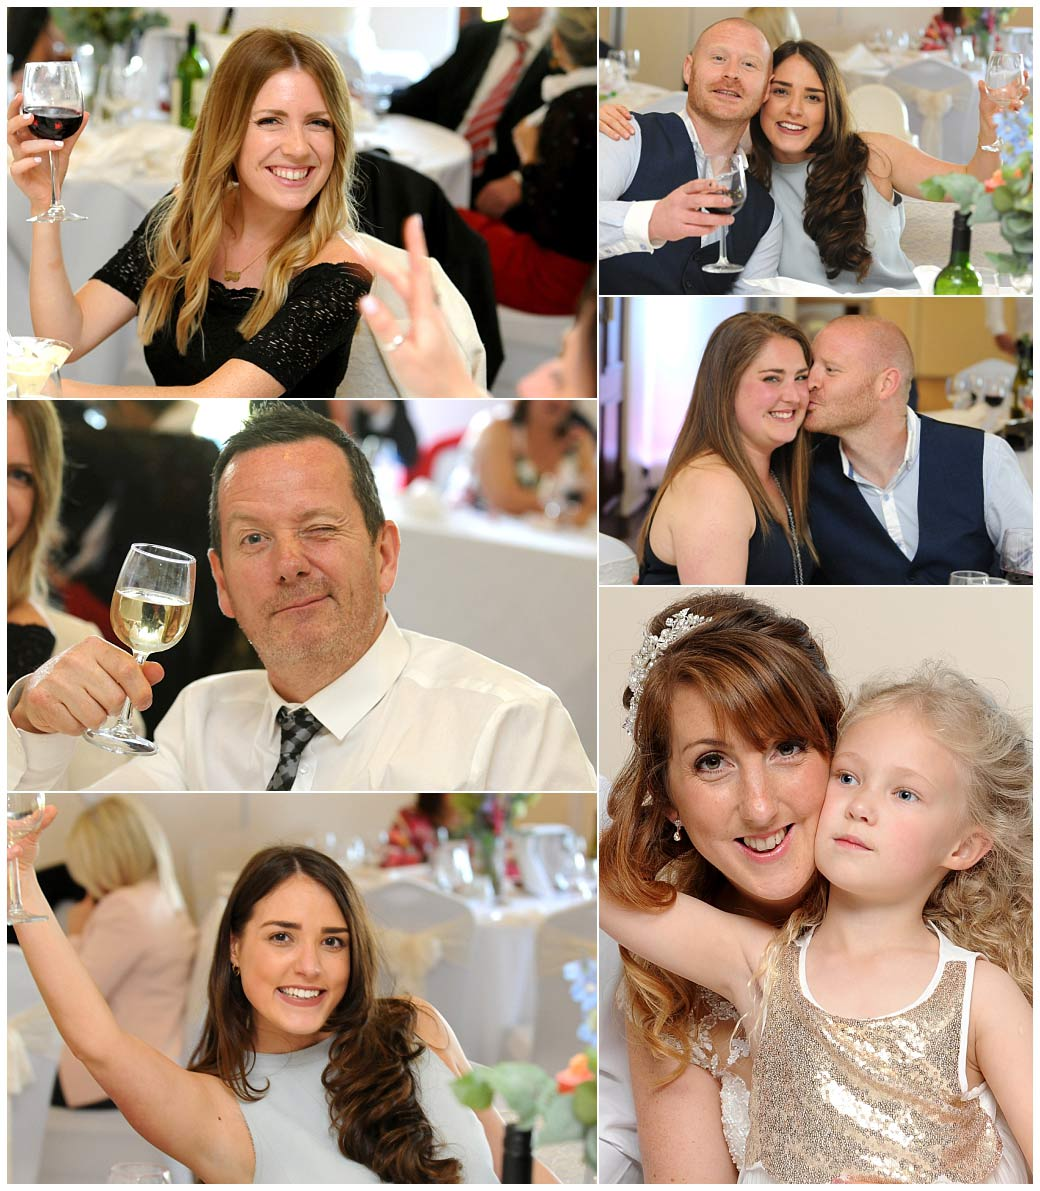 Guests have fun as the wine flows during the lively wedding breakfast captured in The Clarence Suite at Reigate Hill Golf Club in Gatton Bottom Surrey